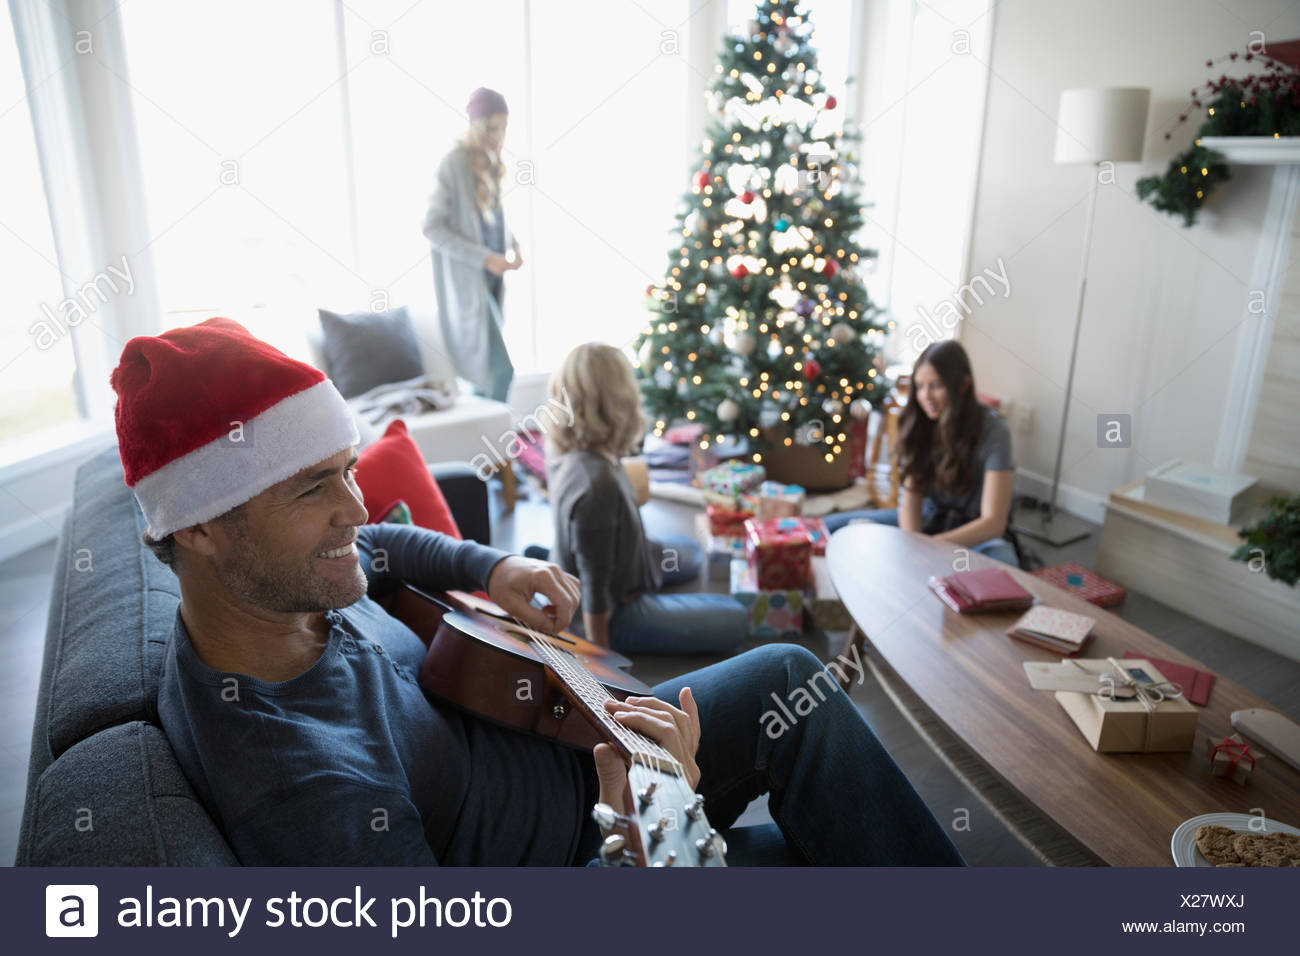 Smiling father in Santa hat playing guitar while family wraps gifts in living room with Christmas tree Stock Photo